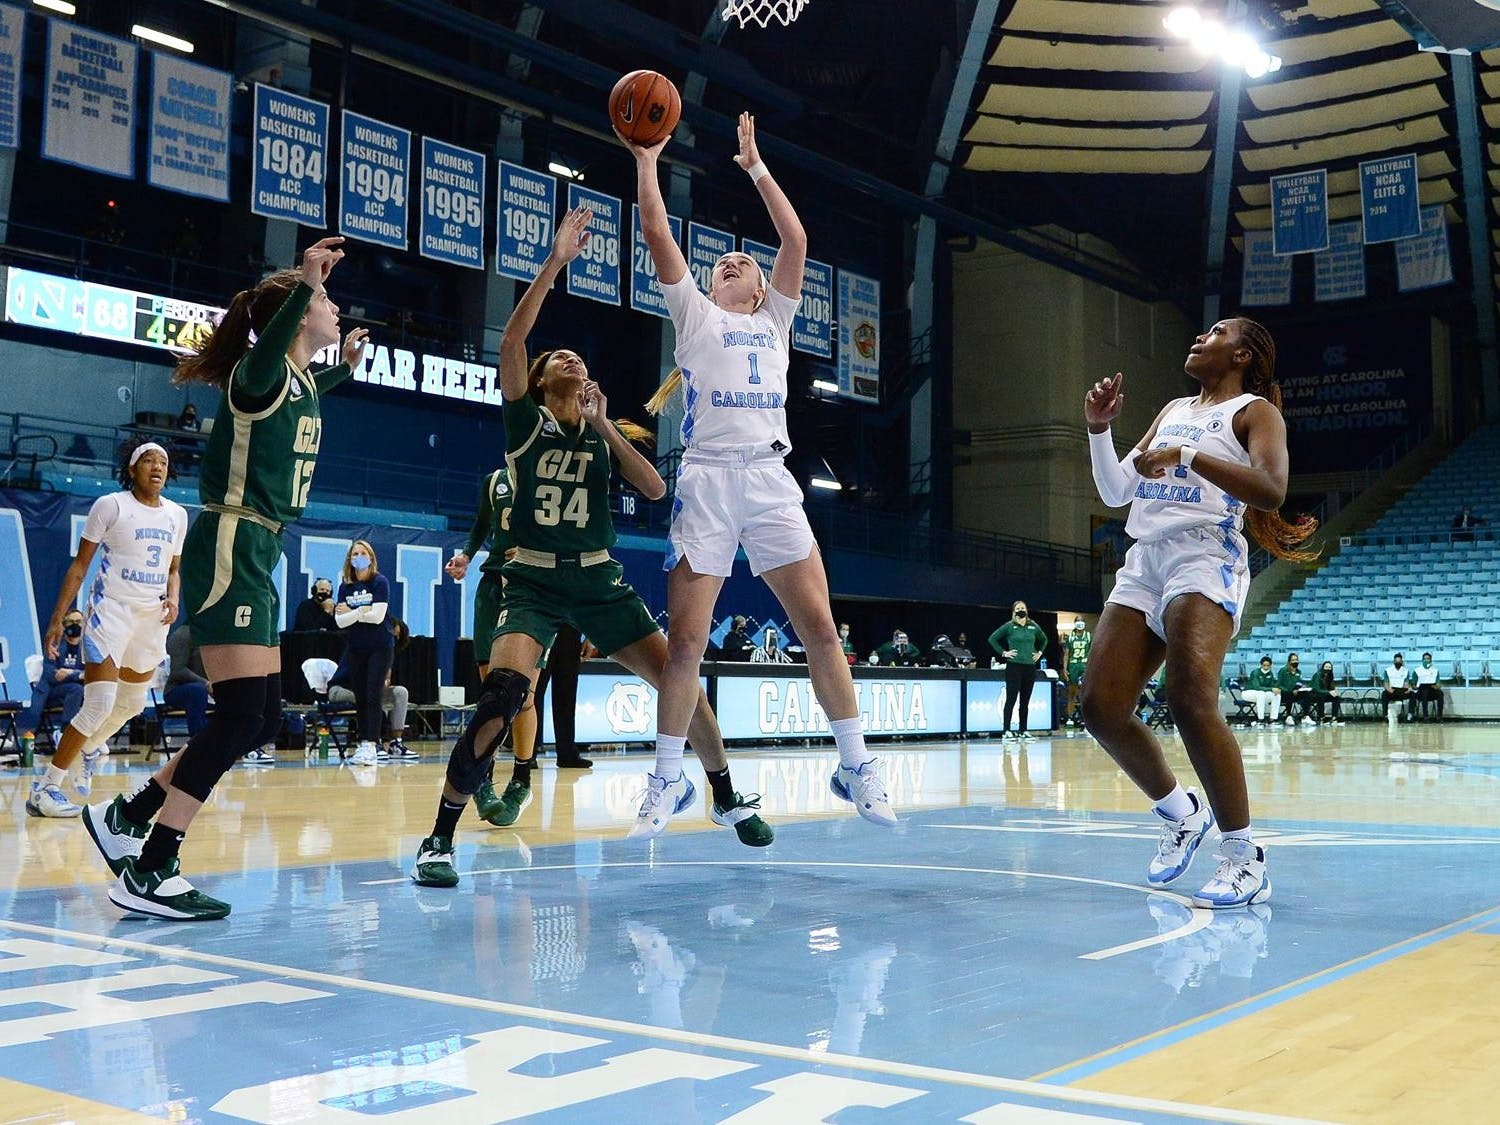 UNC first year guard Alyssa Ustby (1) makes a shot during a game against UNC Charlotte in Carmichael Arena on Sunday, Dec. 6, 2020. UNC beat UNCC 81-75. Photo courtesy of UNC Athletic Communications.